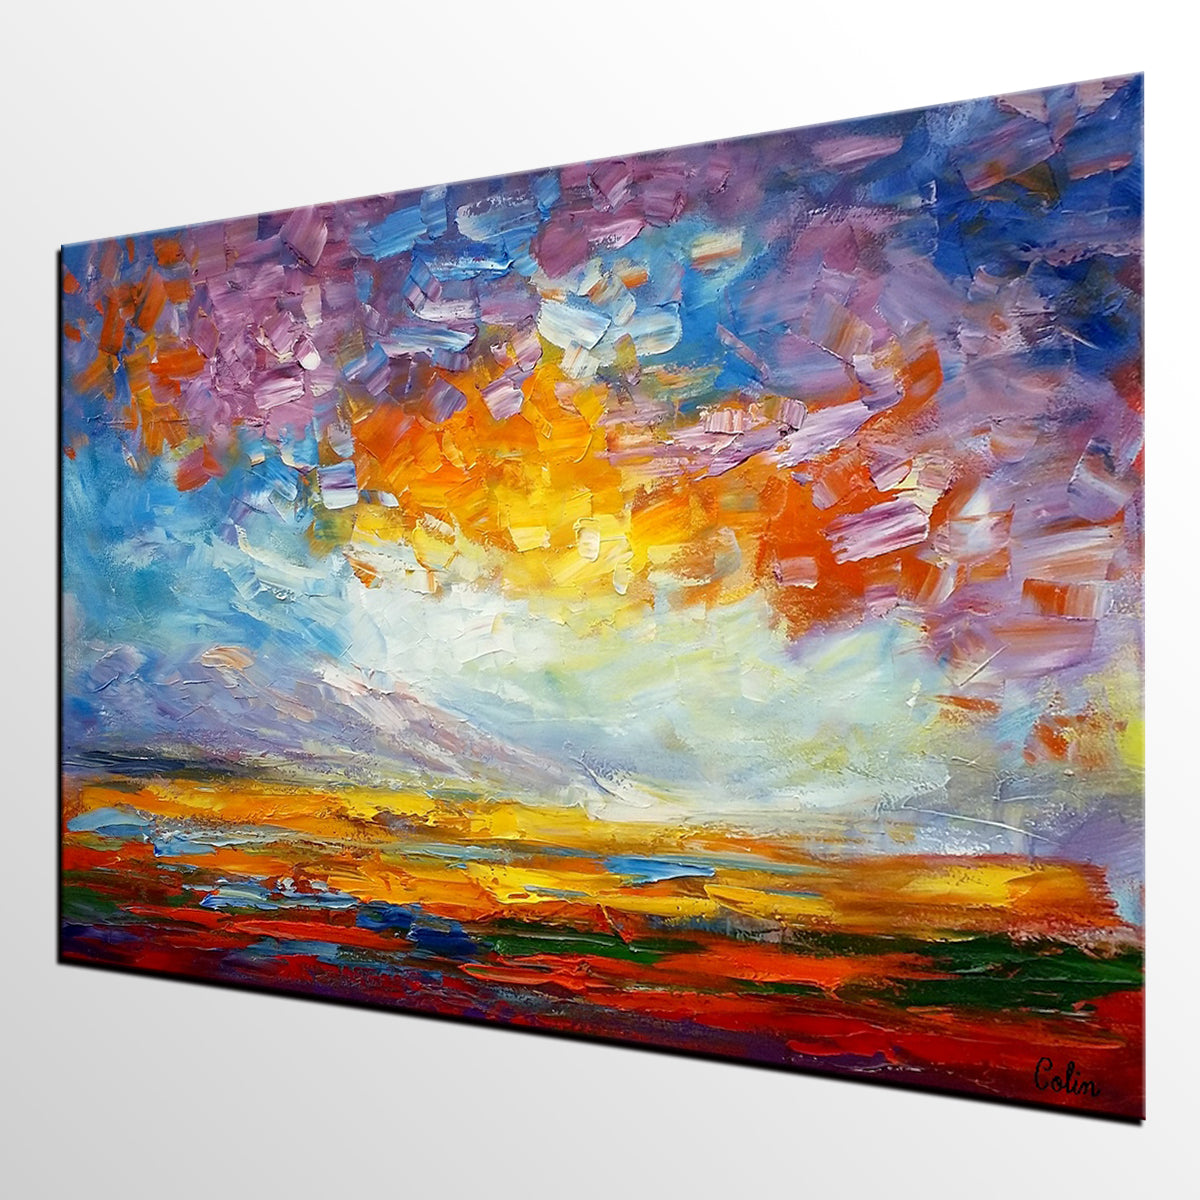 Large Landscape Painting, Original Oil Painting, Abstract Painting, Large Wall Art, Canvas Art, Living Room Wall Art, Canvas Painting, Impasto Art